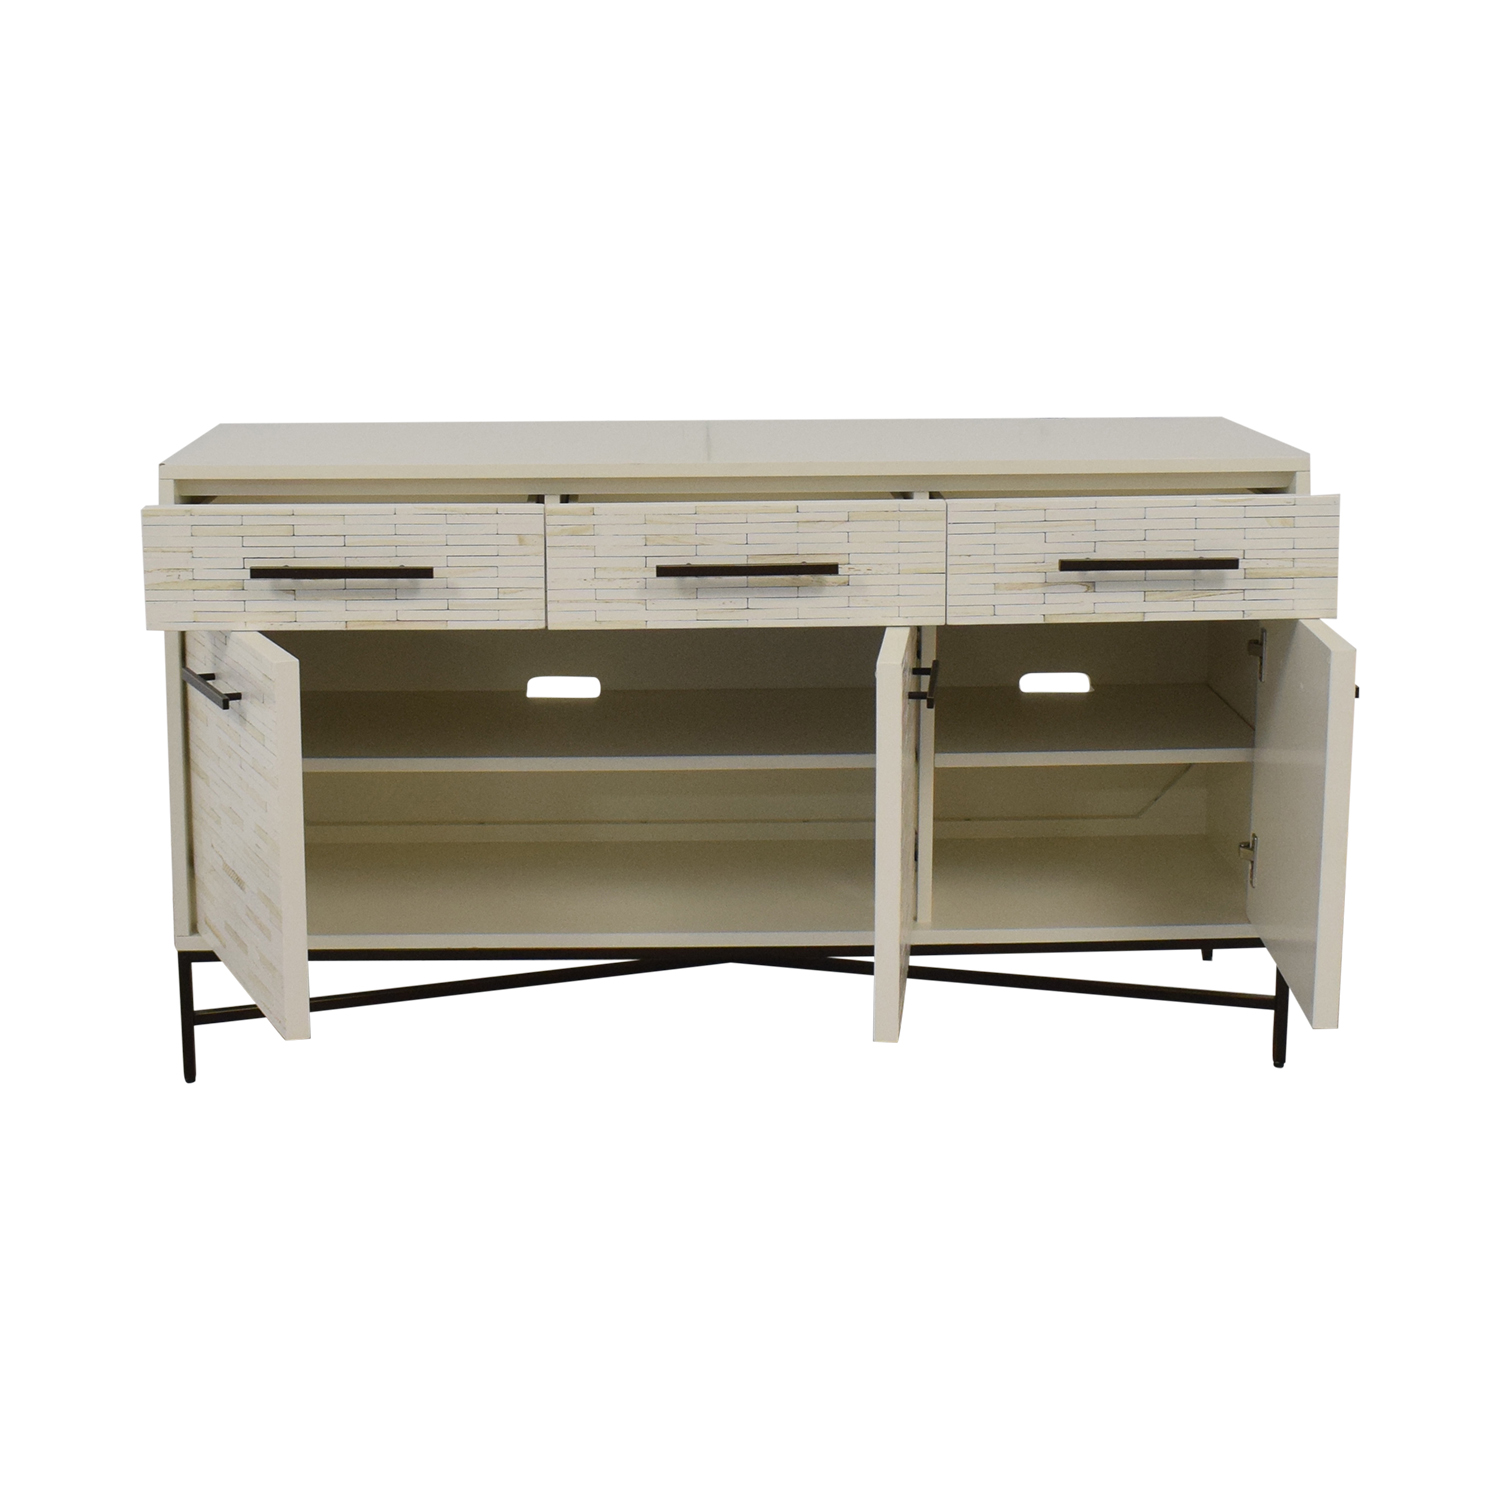 West Elm West Elm Tiled Media Console price